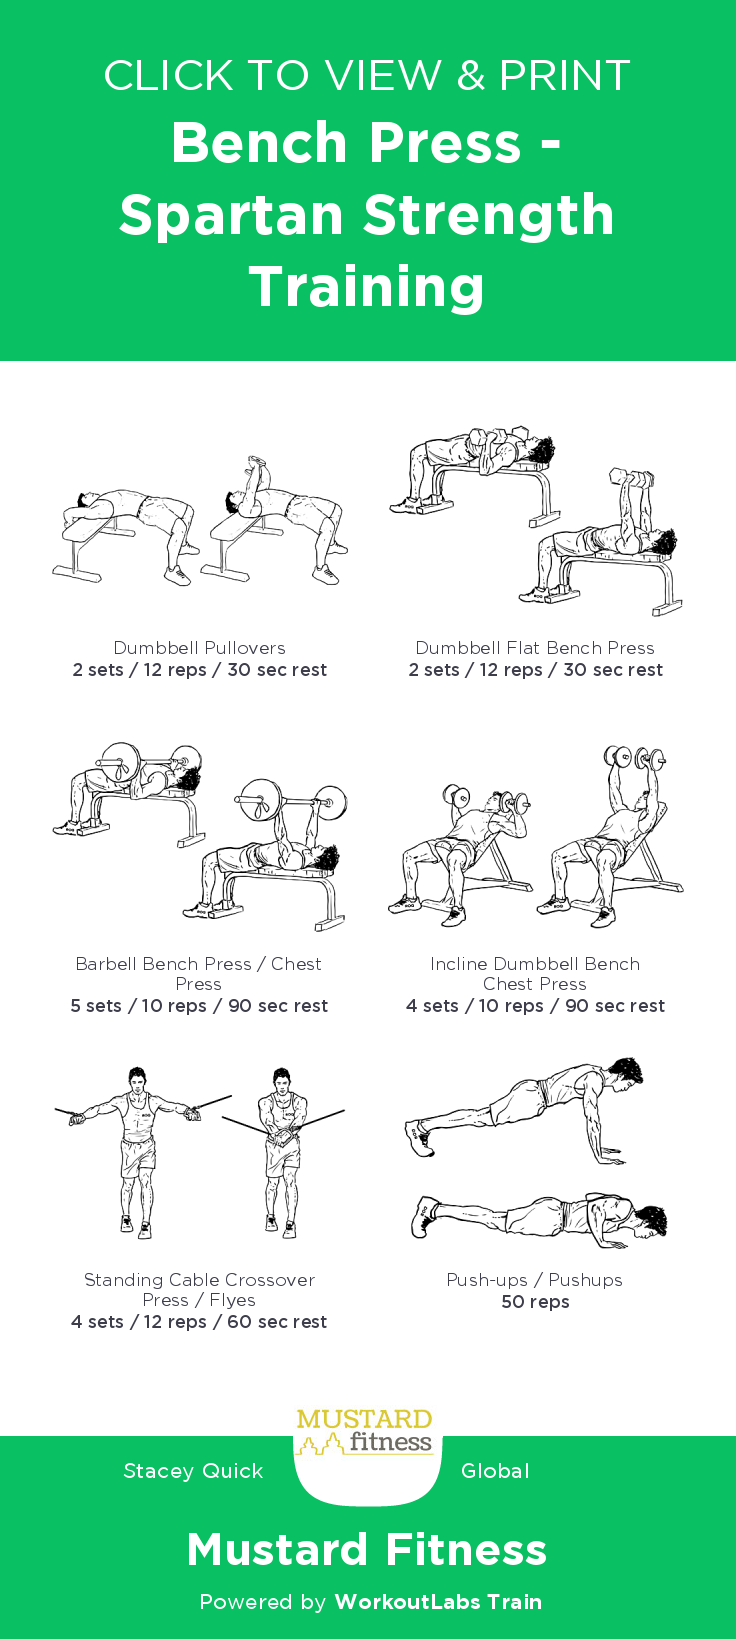 Bench Press Spartan Strength Training Free Illustrated Workout By Stacey Quick At Mustard Fitness View And Dow Bench Press Bench Workout Strength Training